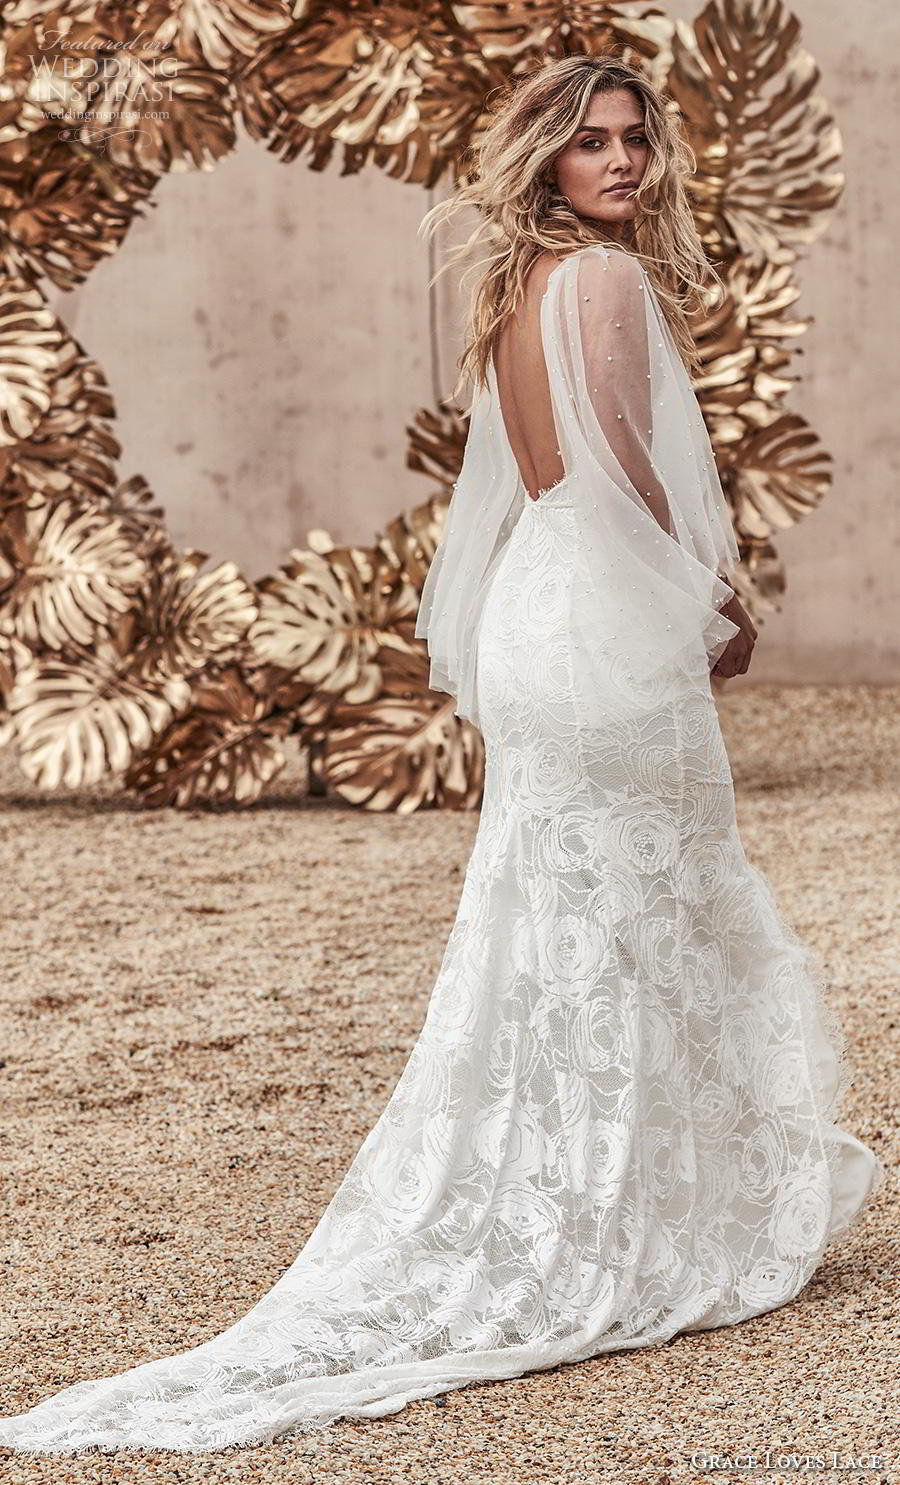 grace love lace 2020 bridal spaghetii strap deep sweetheart neckline full embellishment slit skirt romantic sexy fit and flare wedding dress backless medium train (2) bv